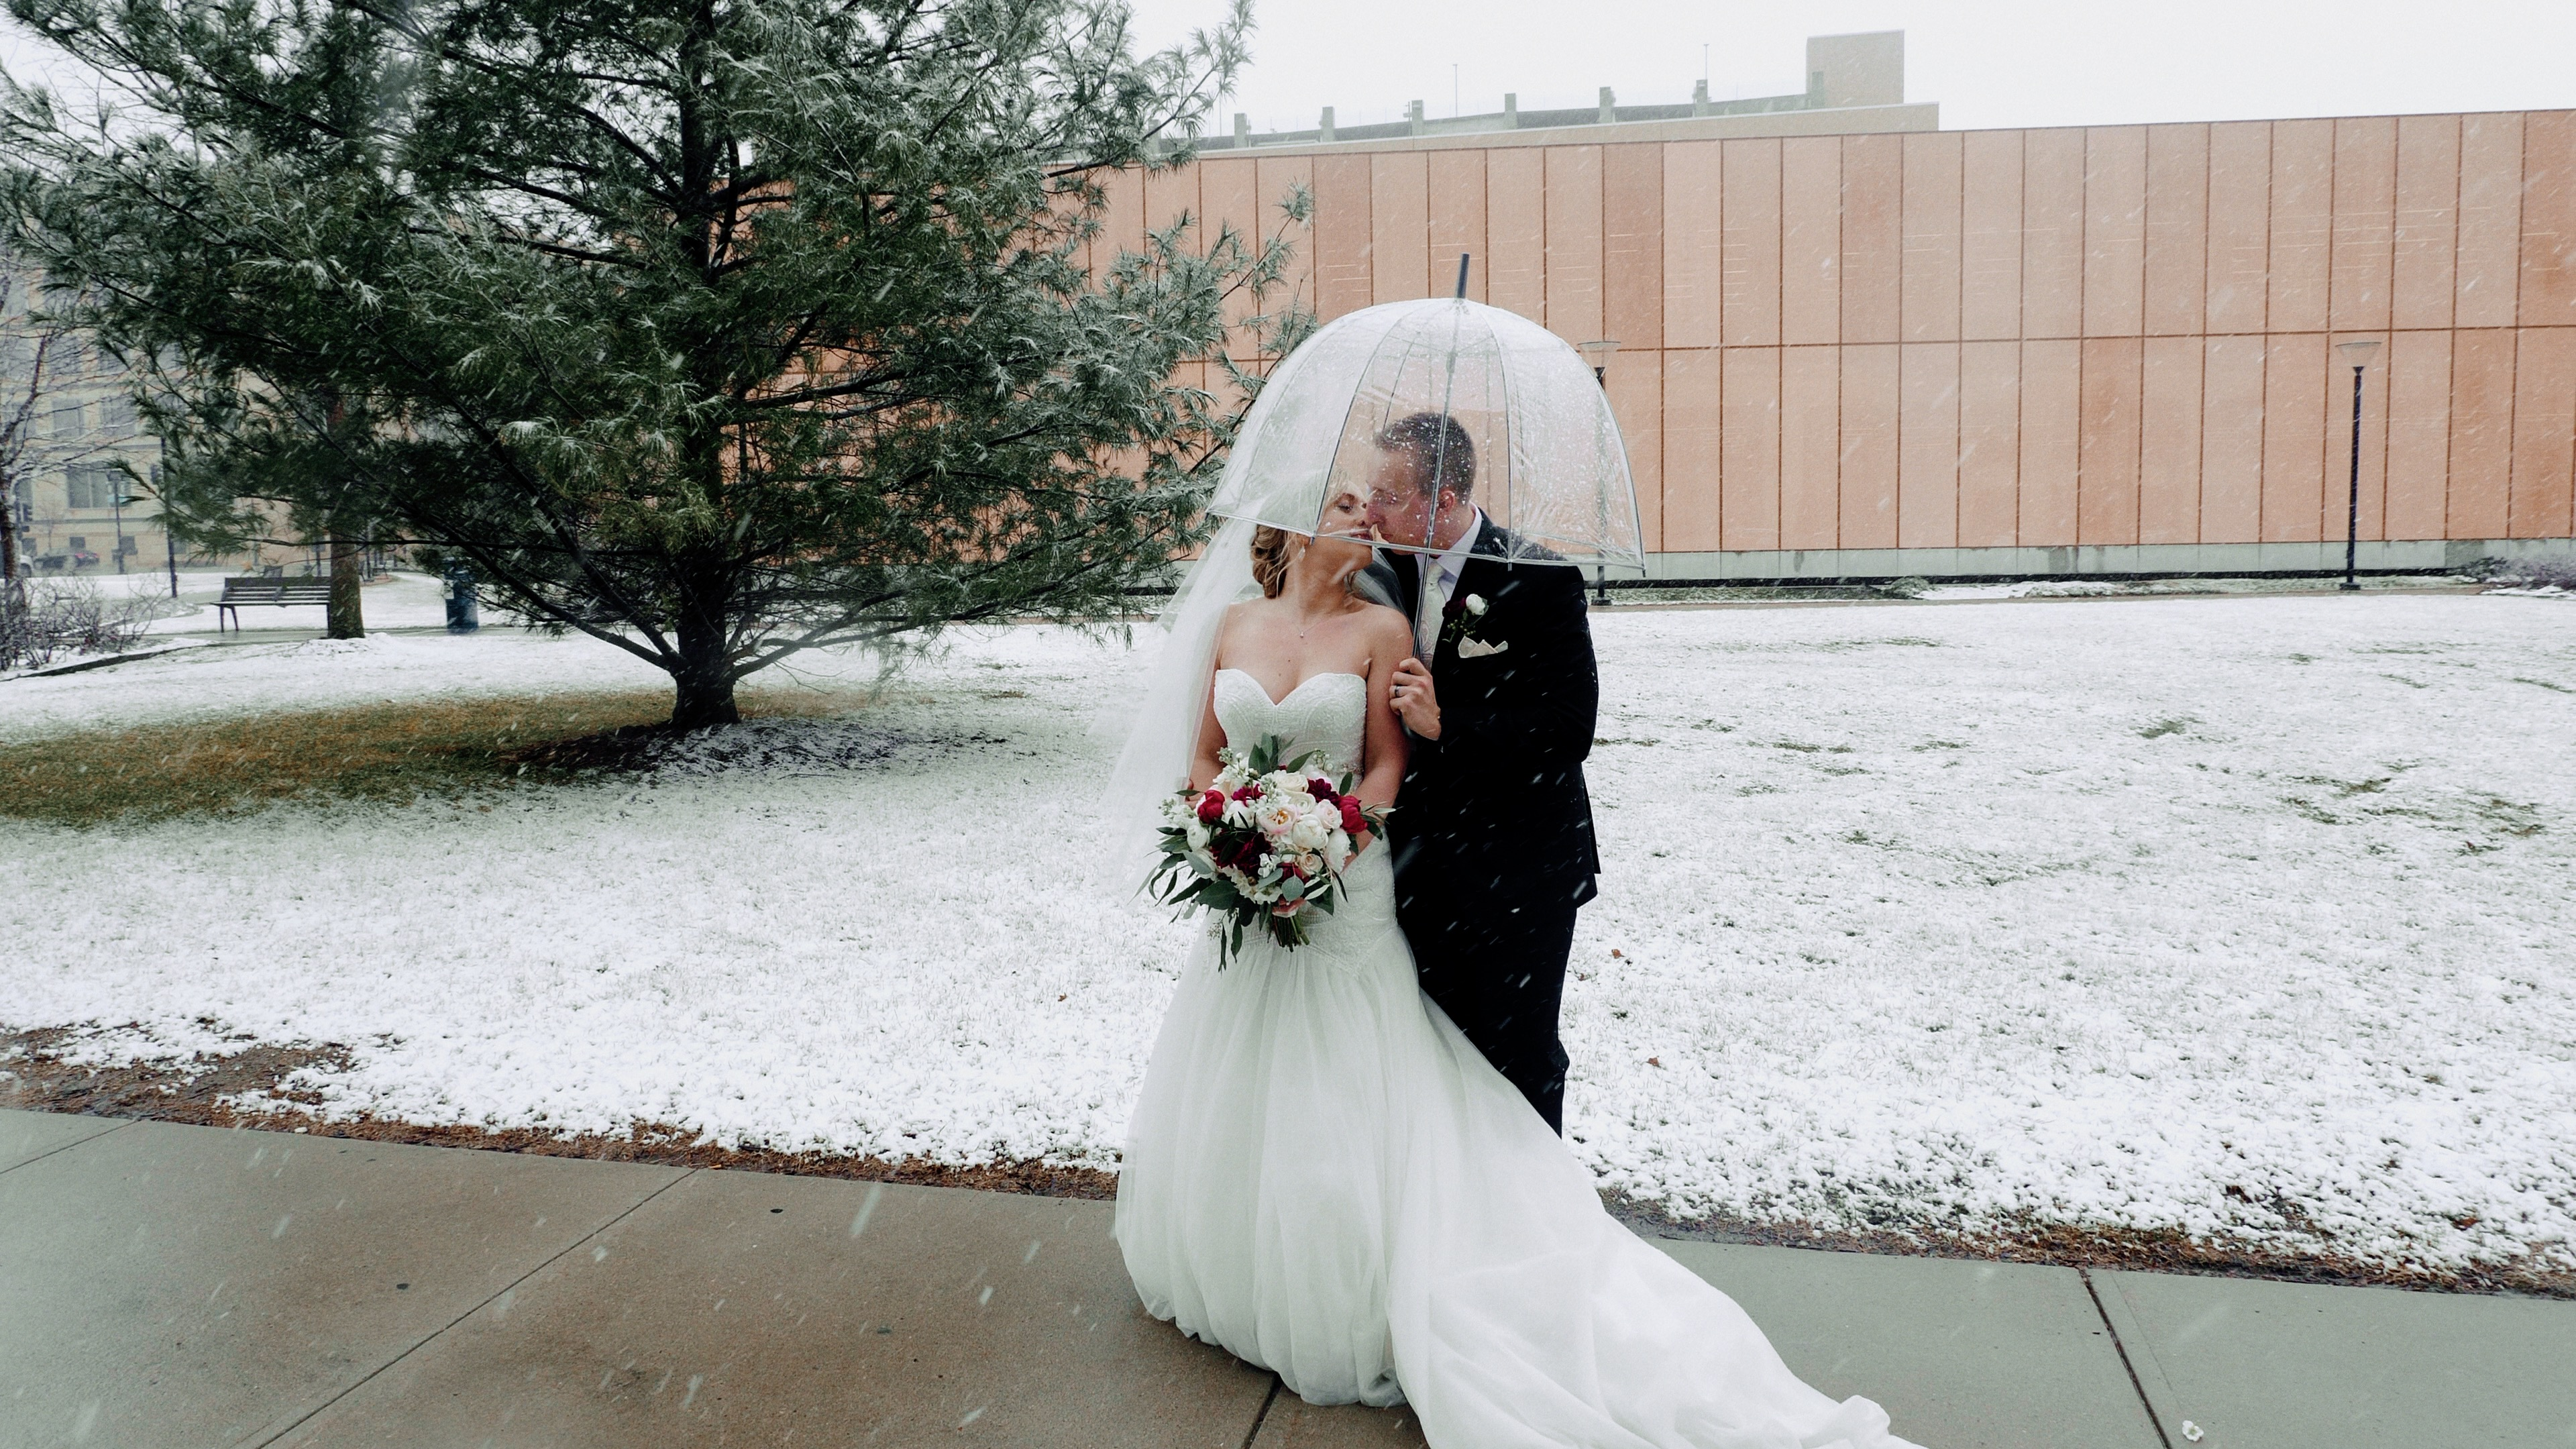 Maddy + Jordan | Des Moines, Iowa | Temple for Performing Arts